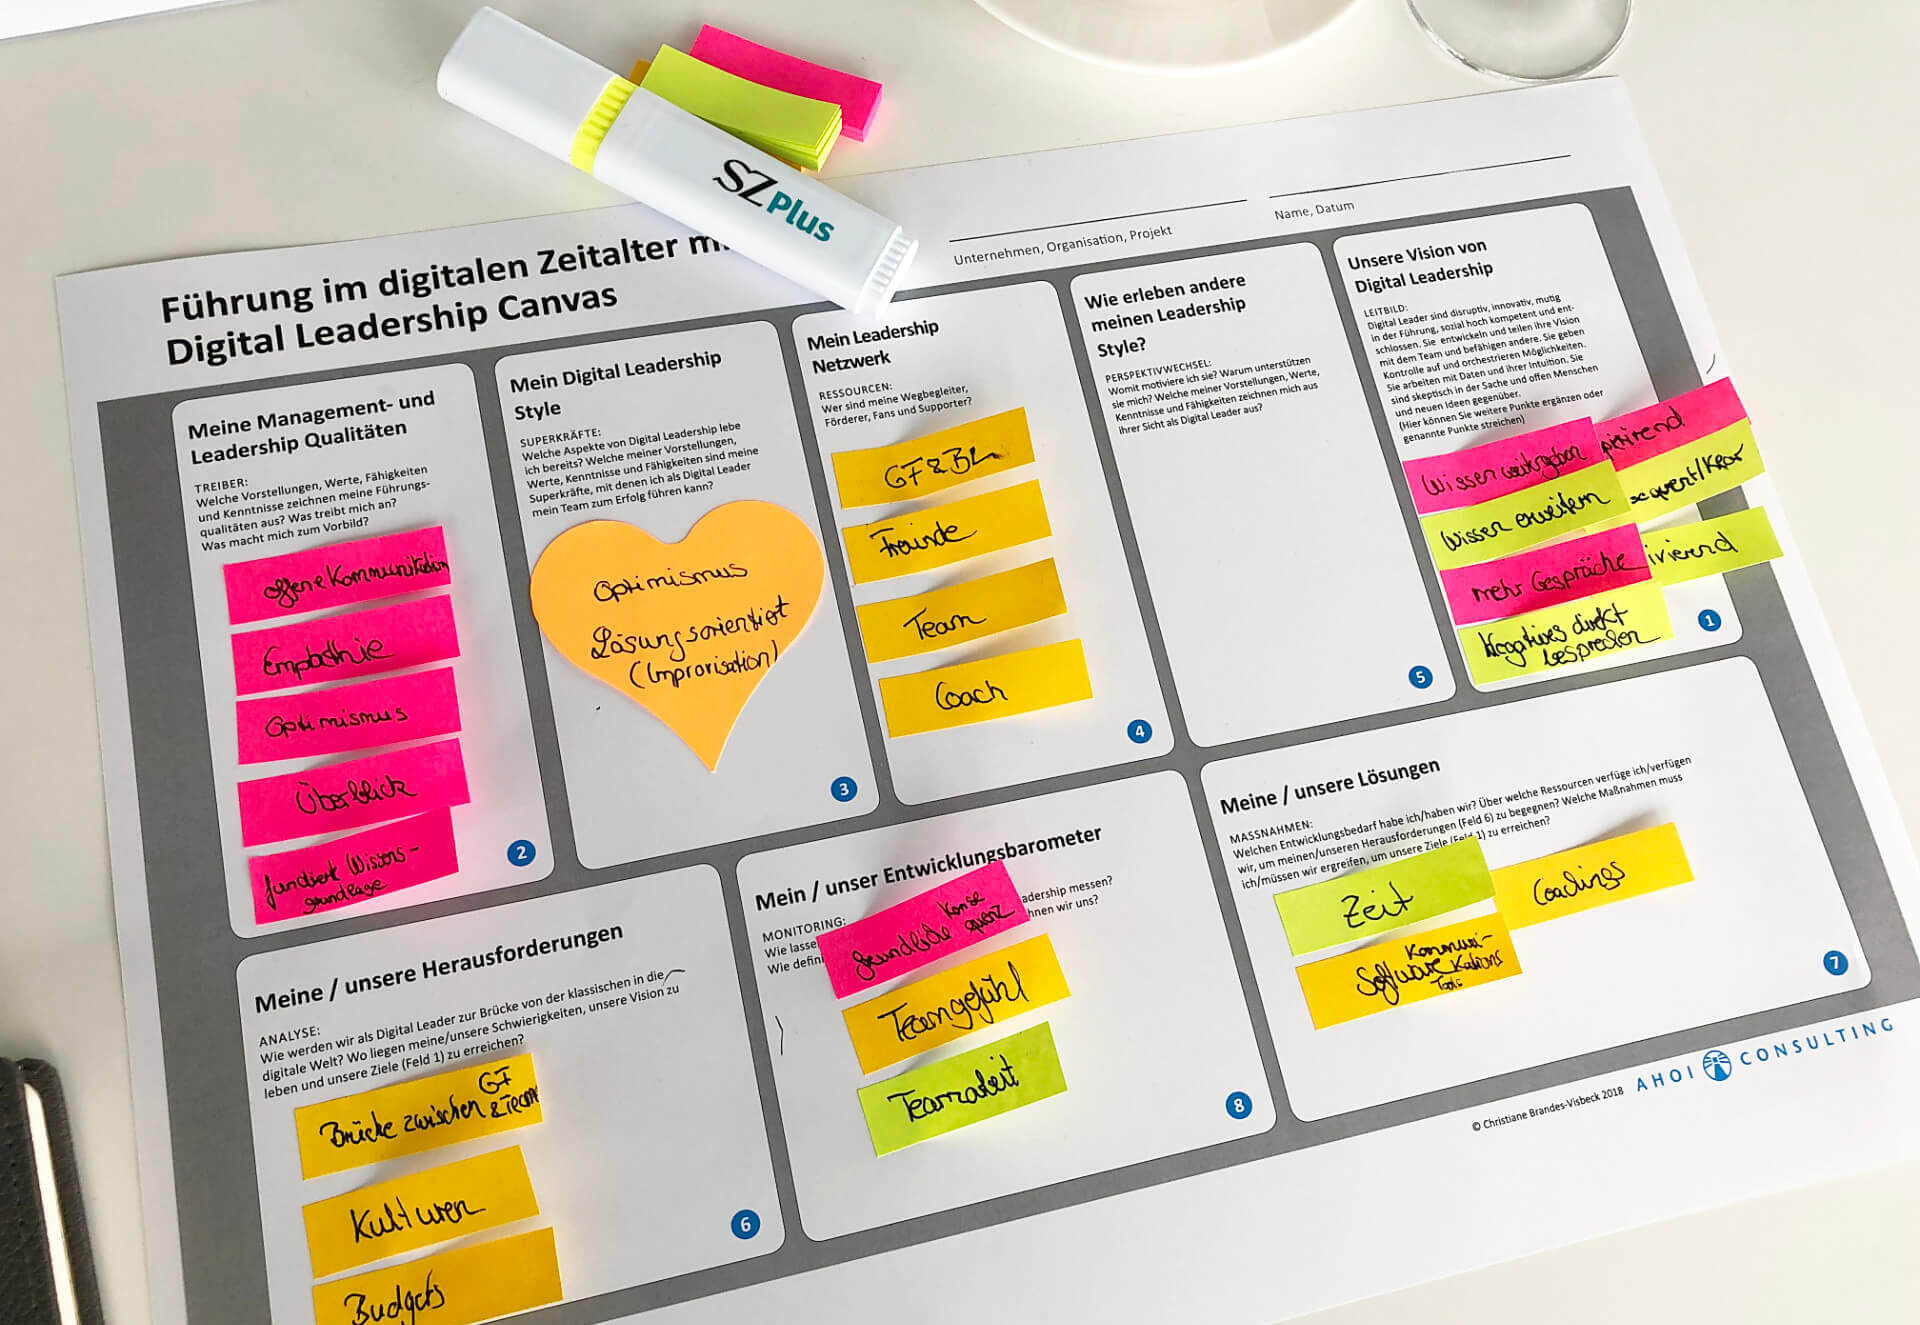 Digital Leadership Canvas - Christiane Brandes-Visbeck